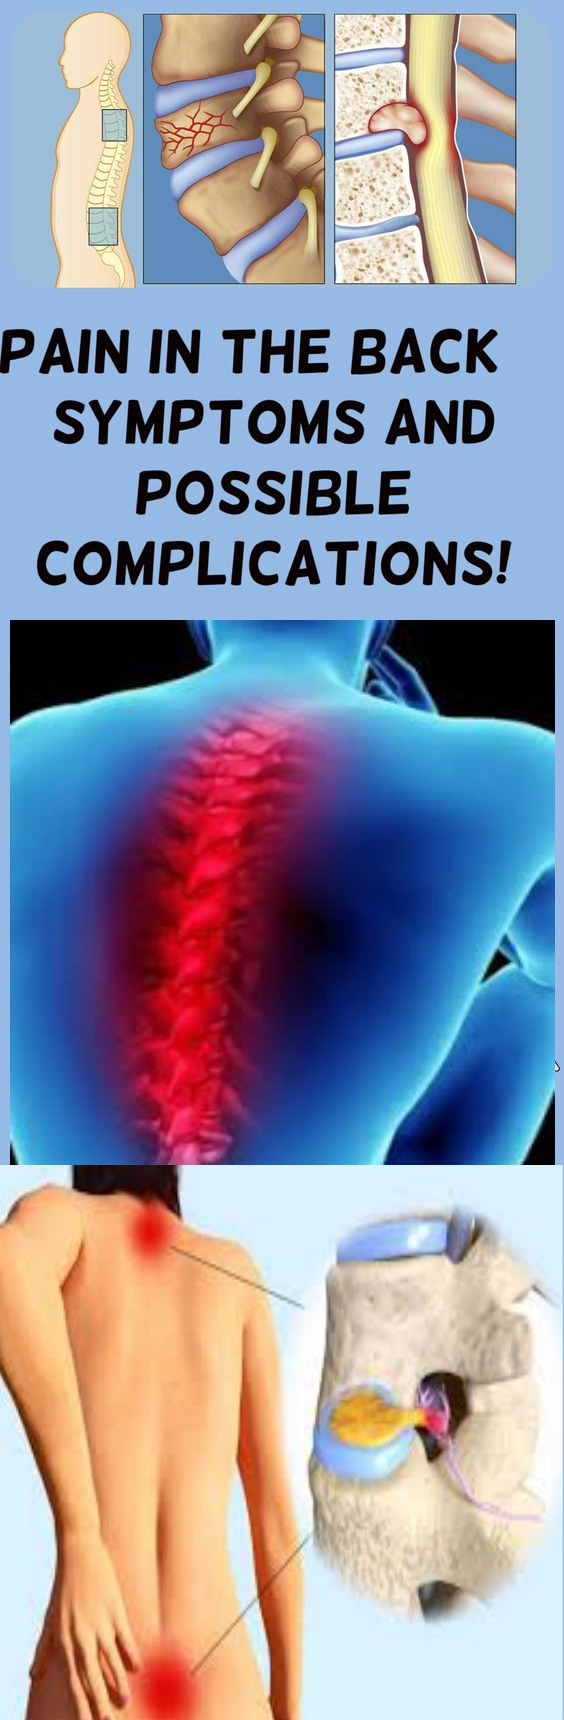 12 Pain In The Back – SYMPTOMS AND POSSIBLE COMPLICATIONS!